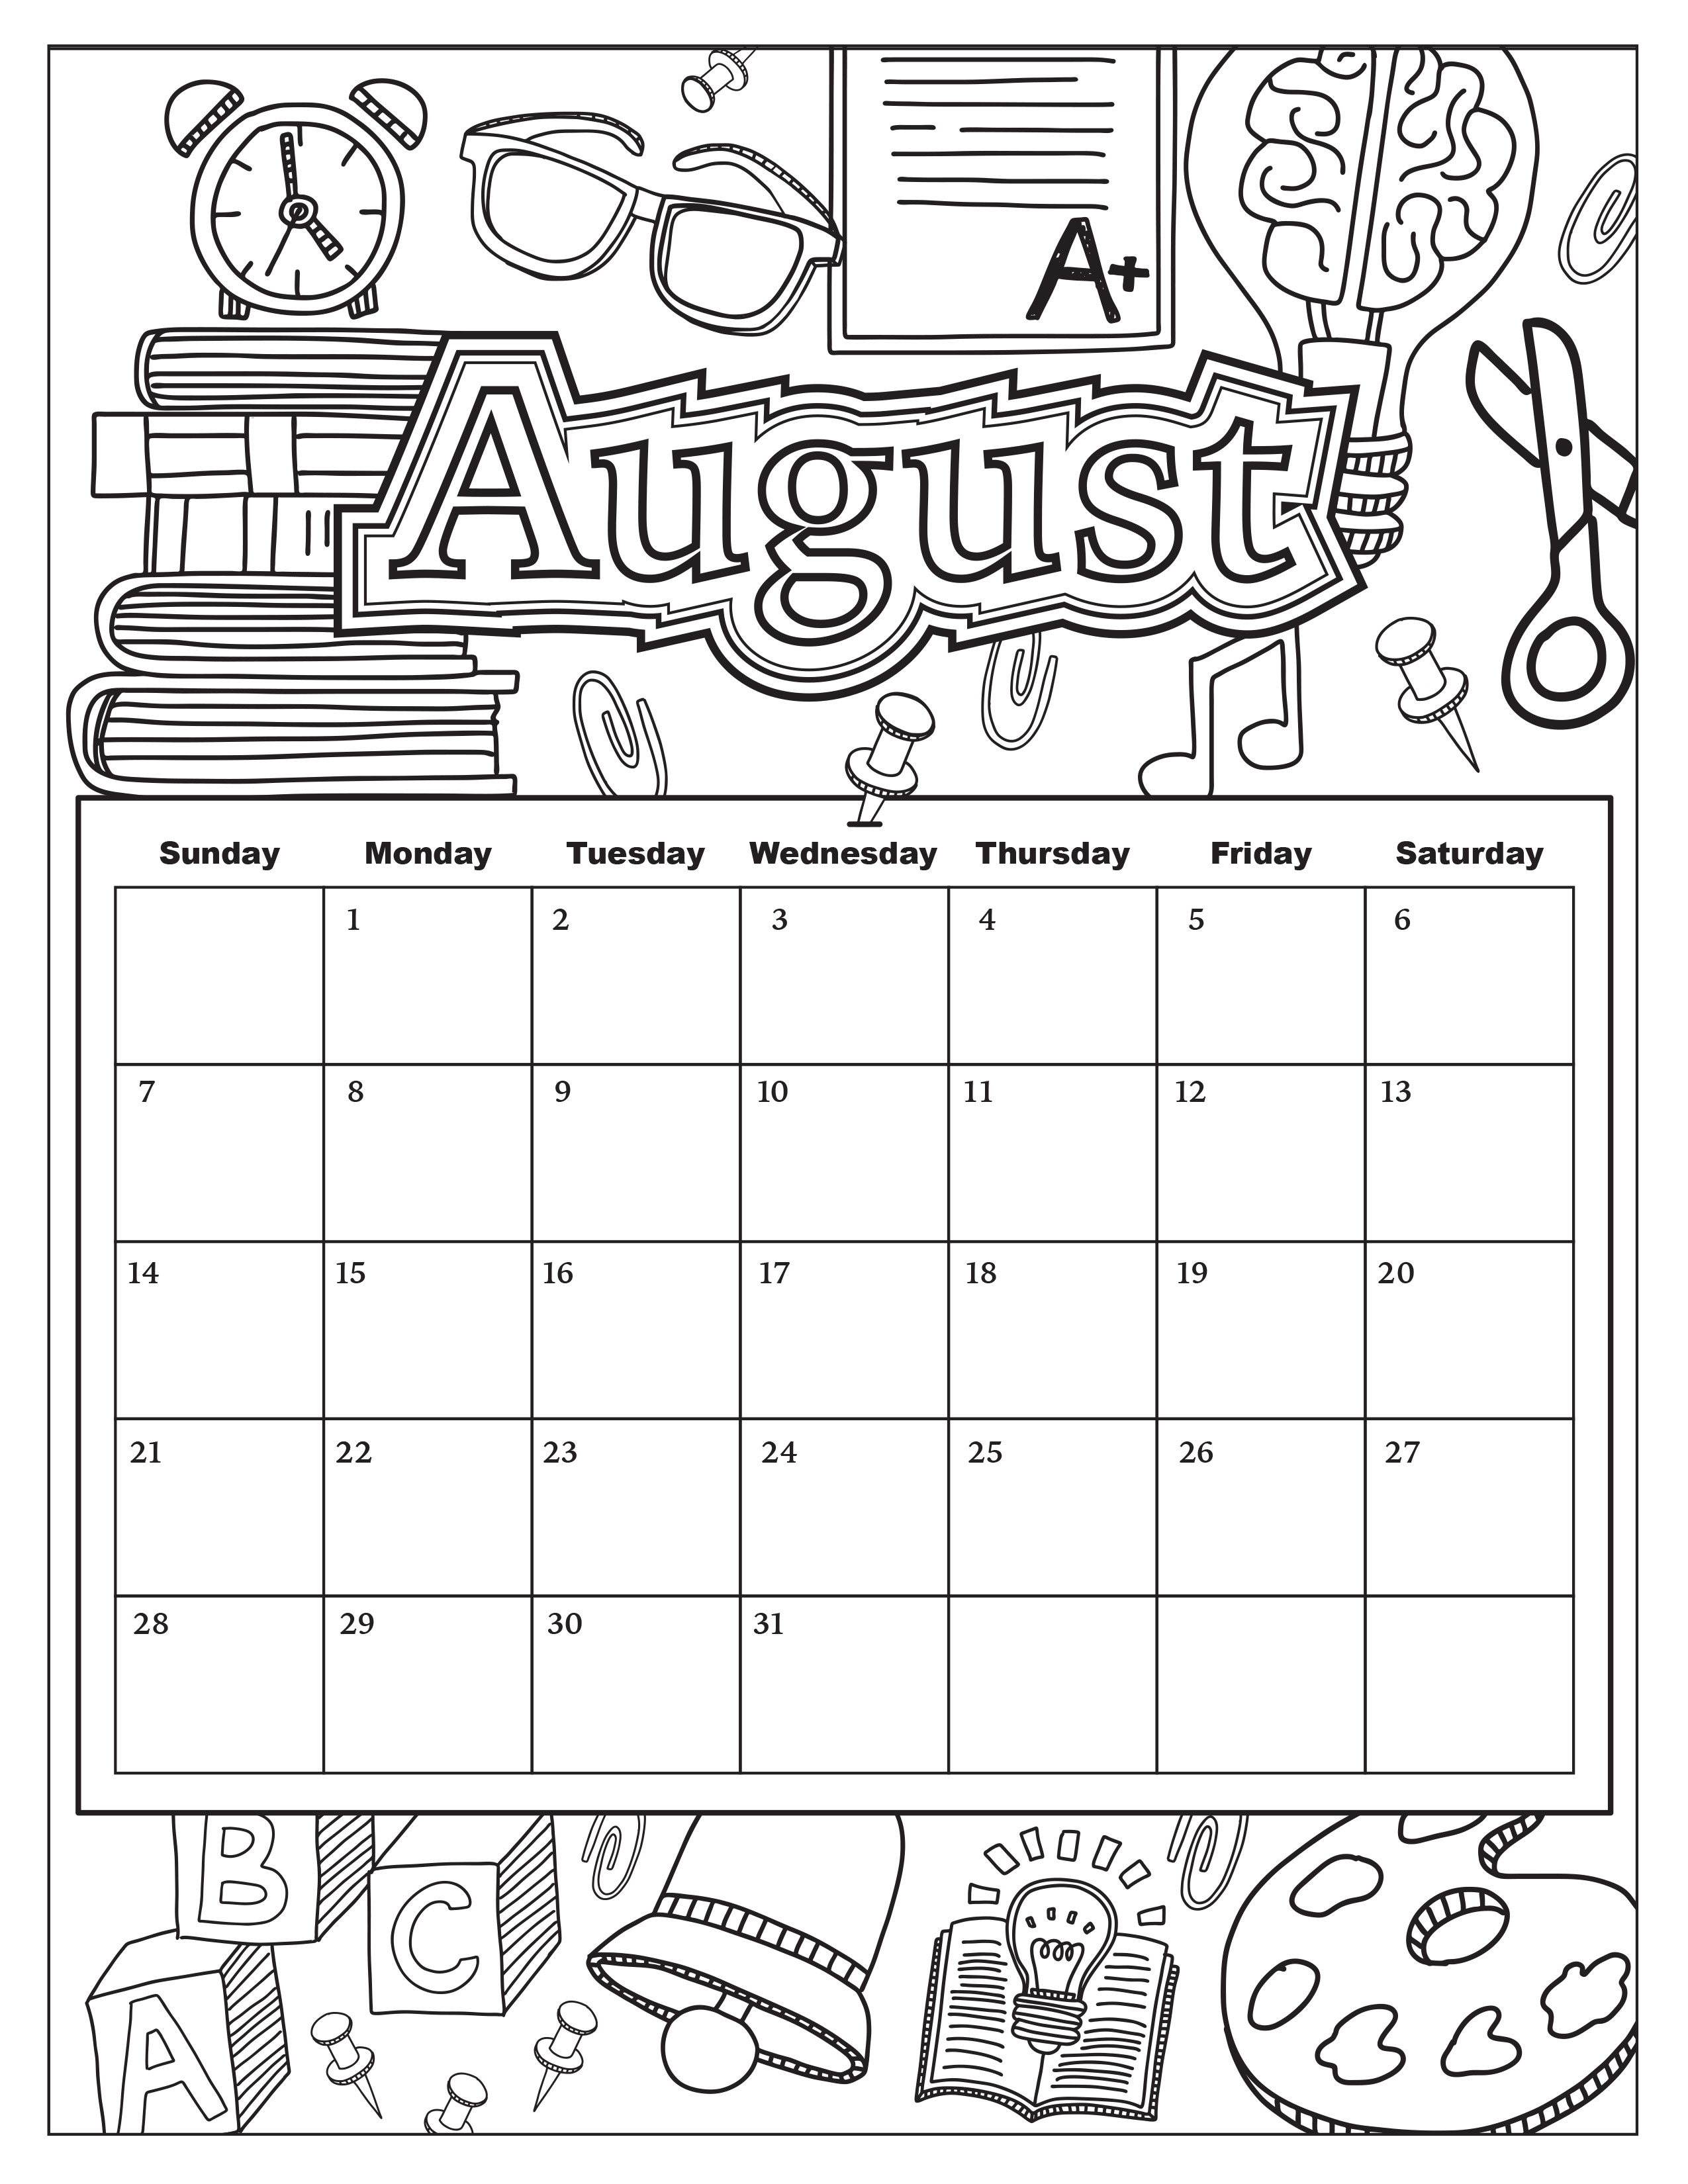 Free Download: Coloring Pages From Popular Adult Coloring Books with Free Printable Adult October Calendar 2019 Coloring Sheets